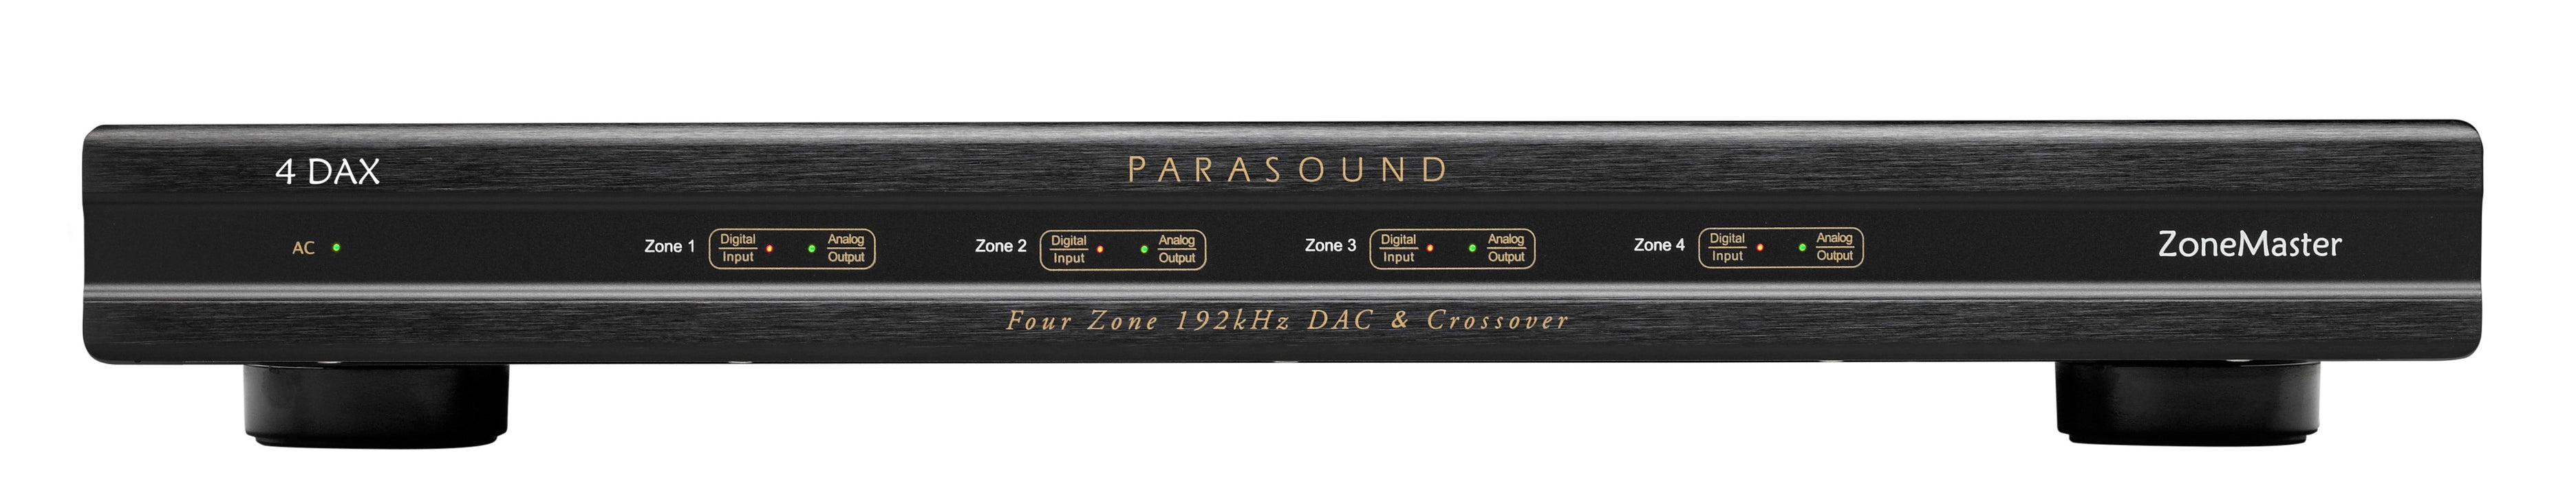 Parasound ZoneMaster 4 DAX  Four Zone 192kHz 24bit DAC and Crossover B-Stock Full Warranty - Safe and Sound HQ